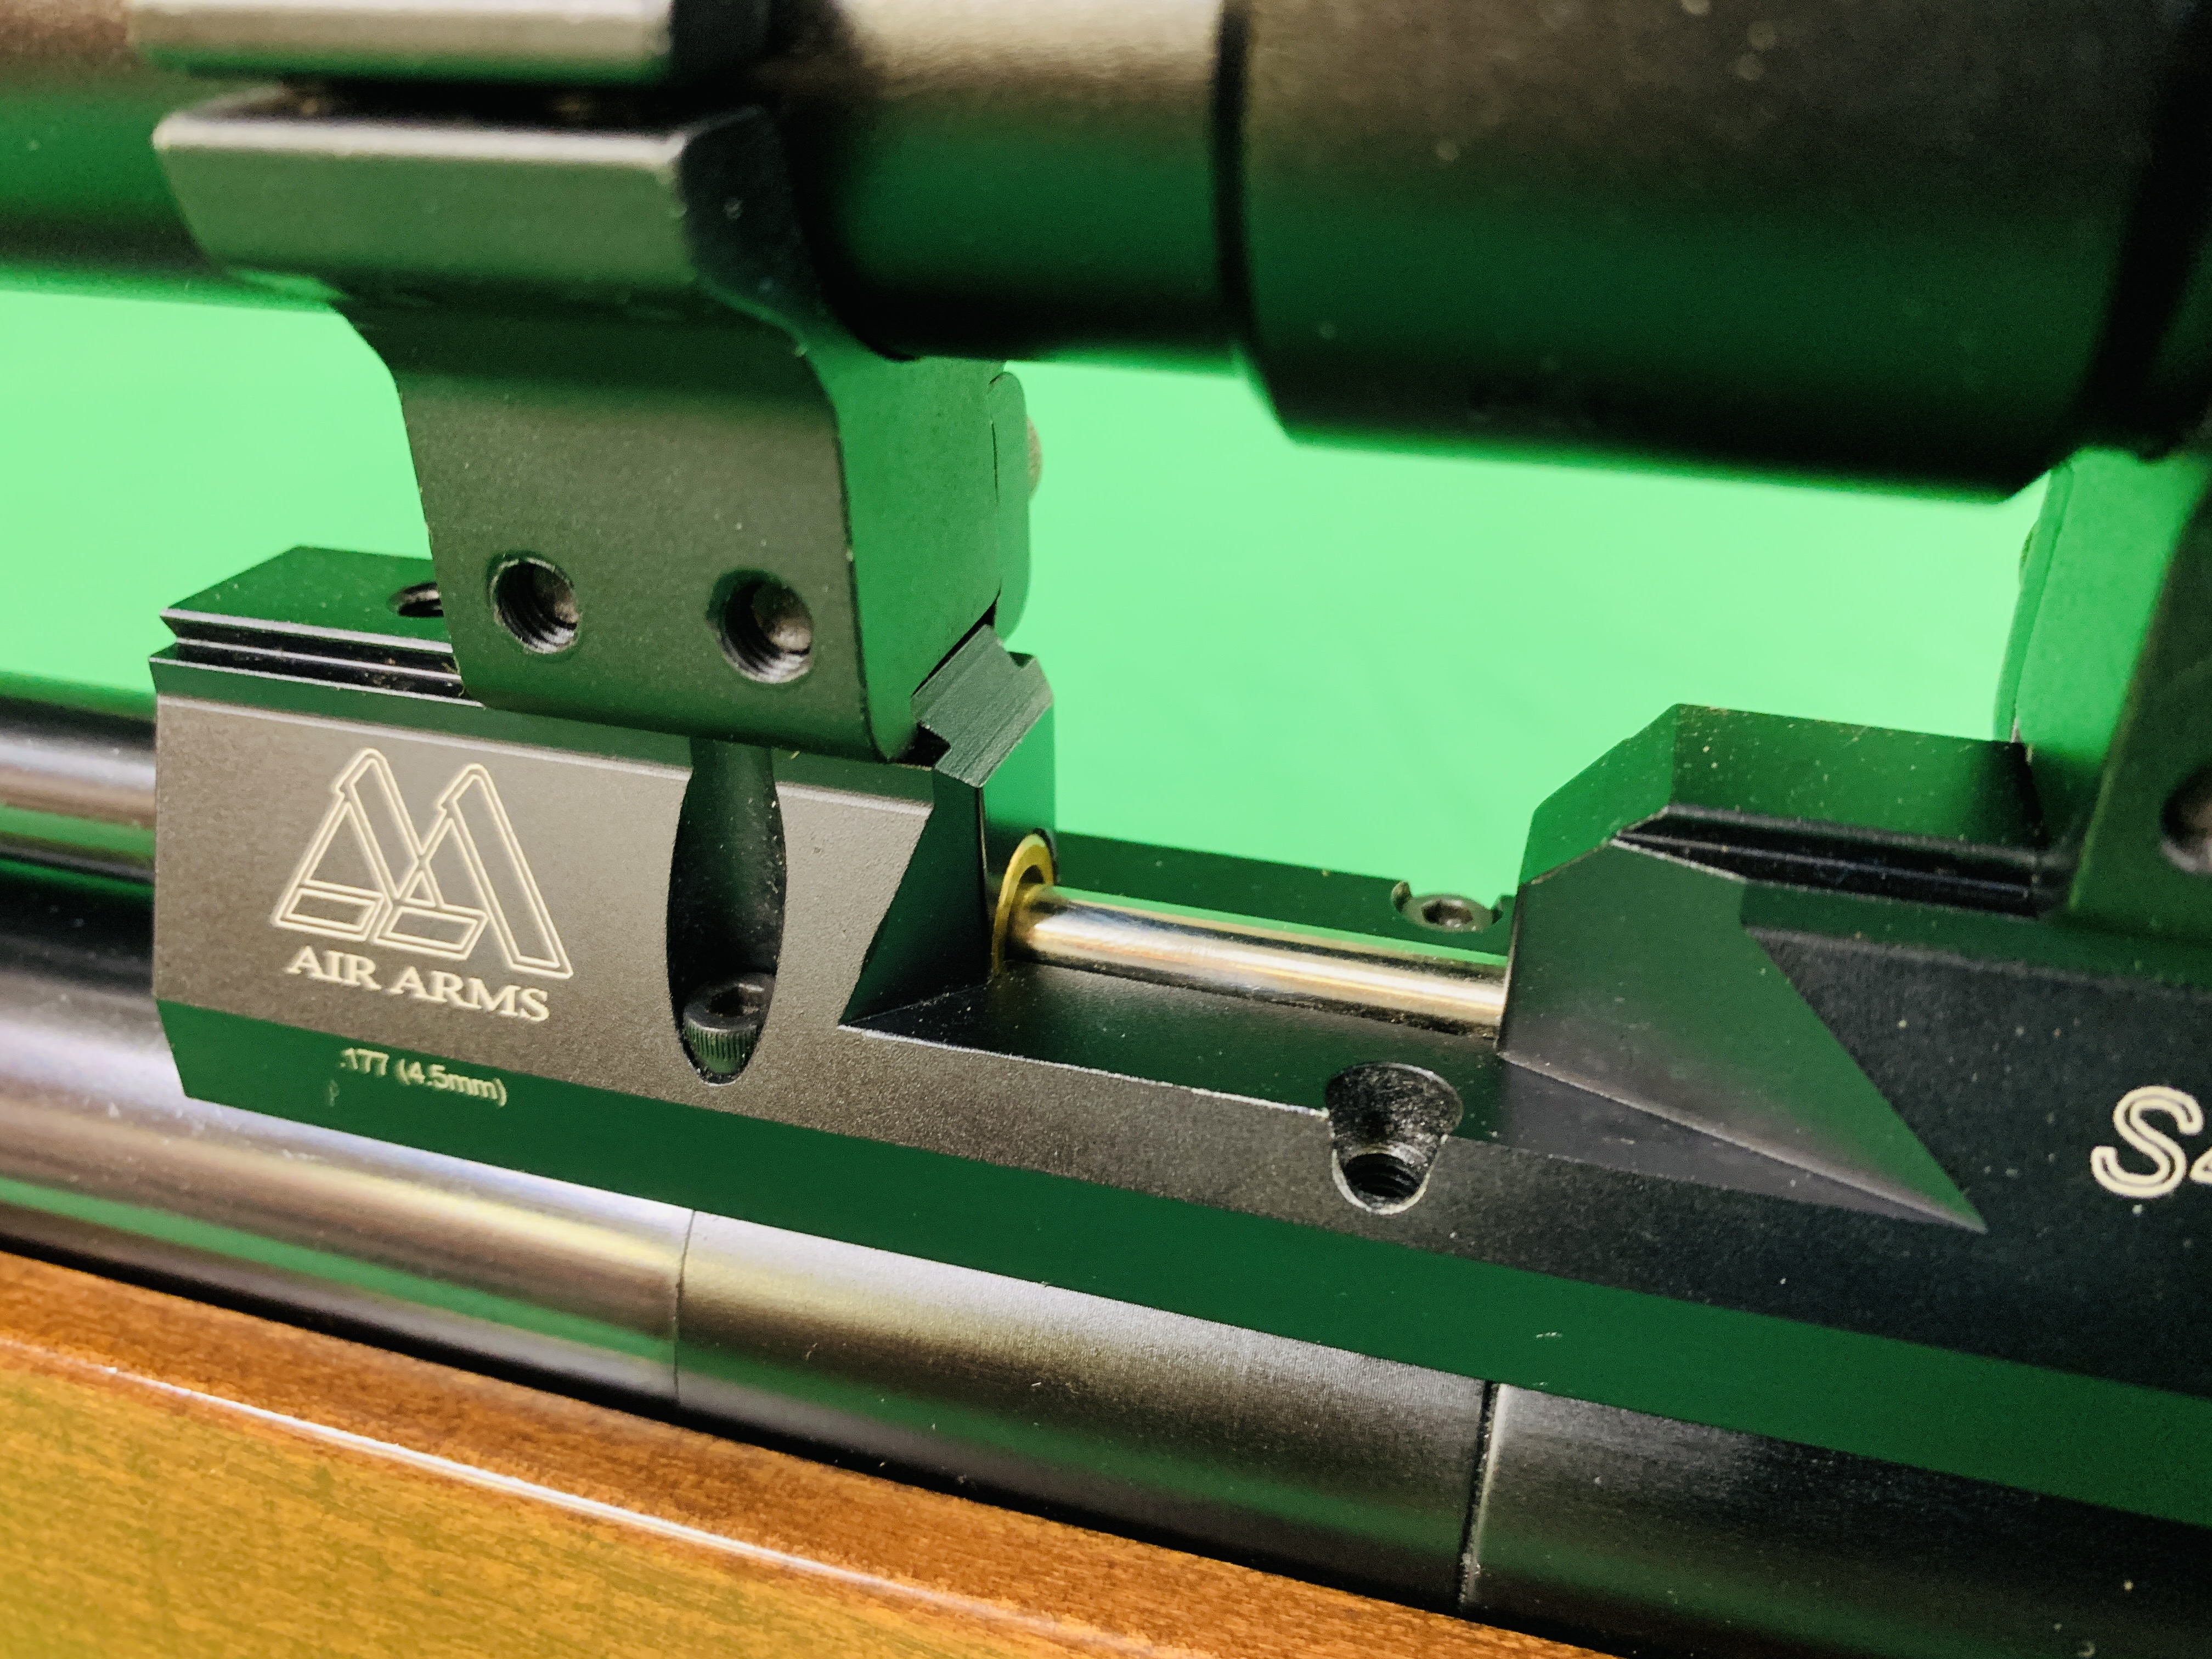 AIR ARMS S400 CLASSIC .177 BOLT ACTION PCP AIR RIFLE FITTED WITH BONUS 6. - Image 9 of 17